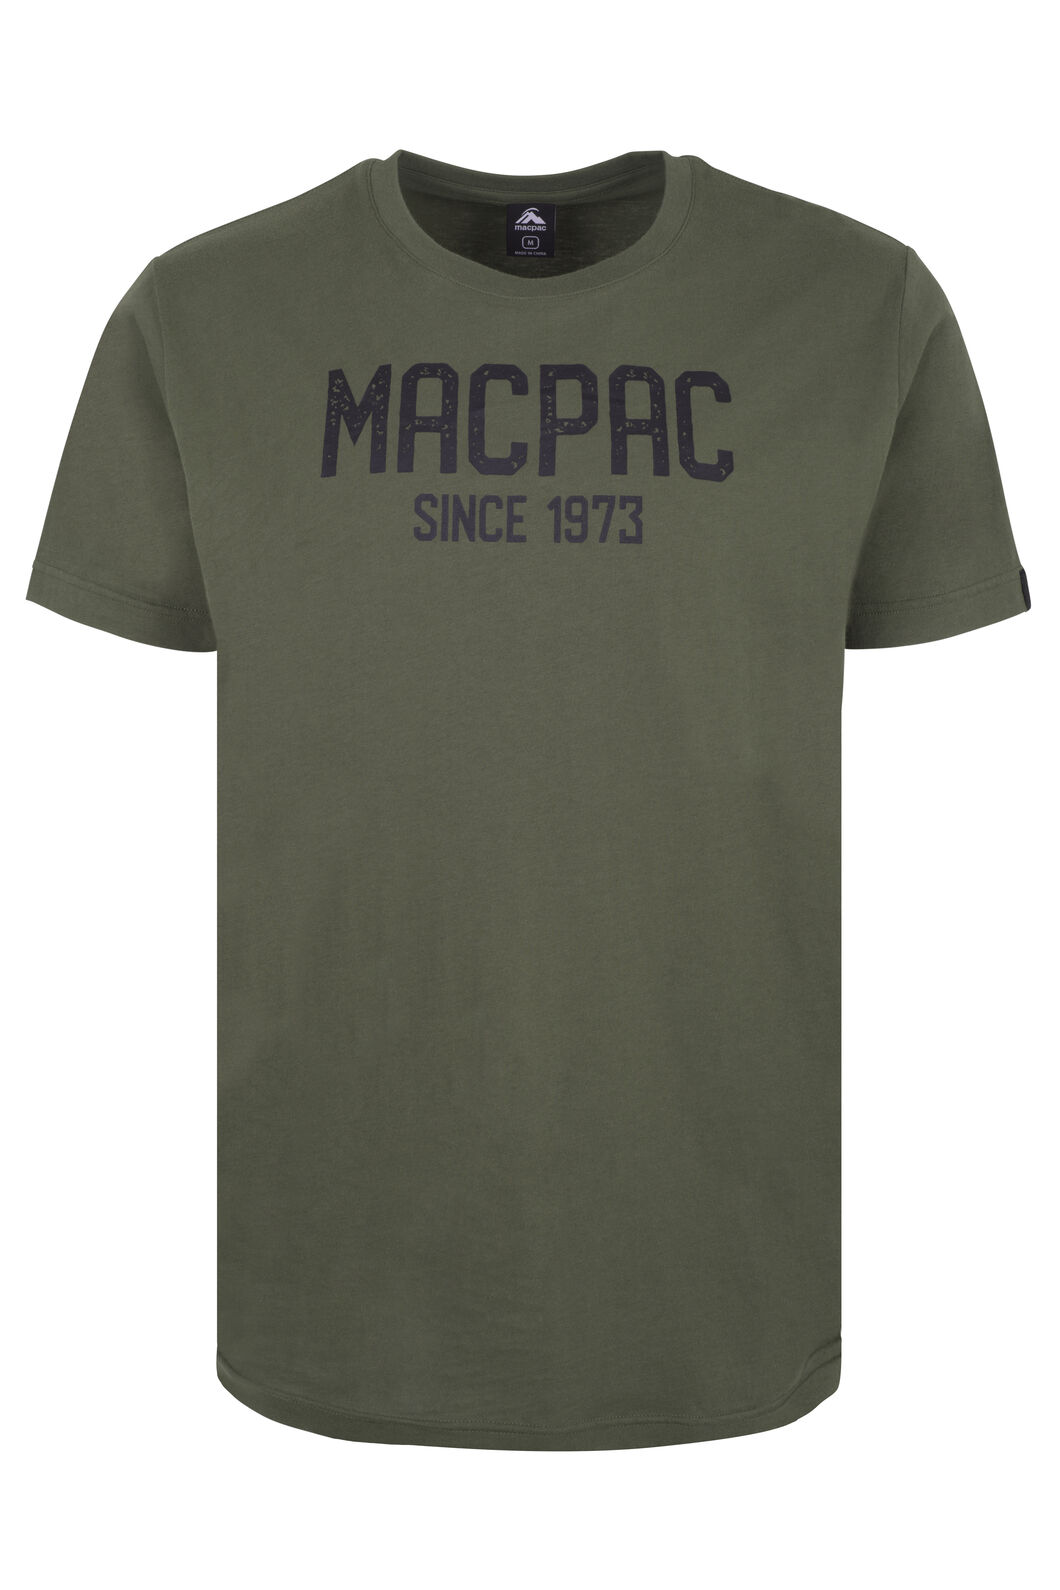 Macpac Freshman Organic Cotton Tee - Men's, Grape Leaf, hi-res